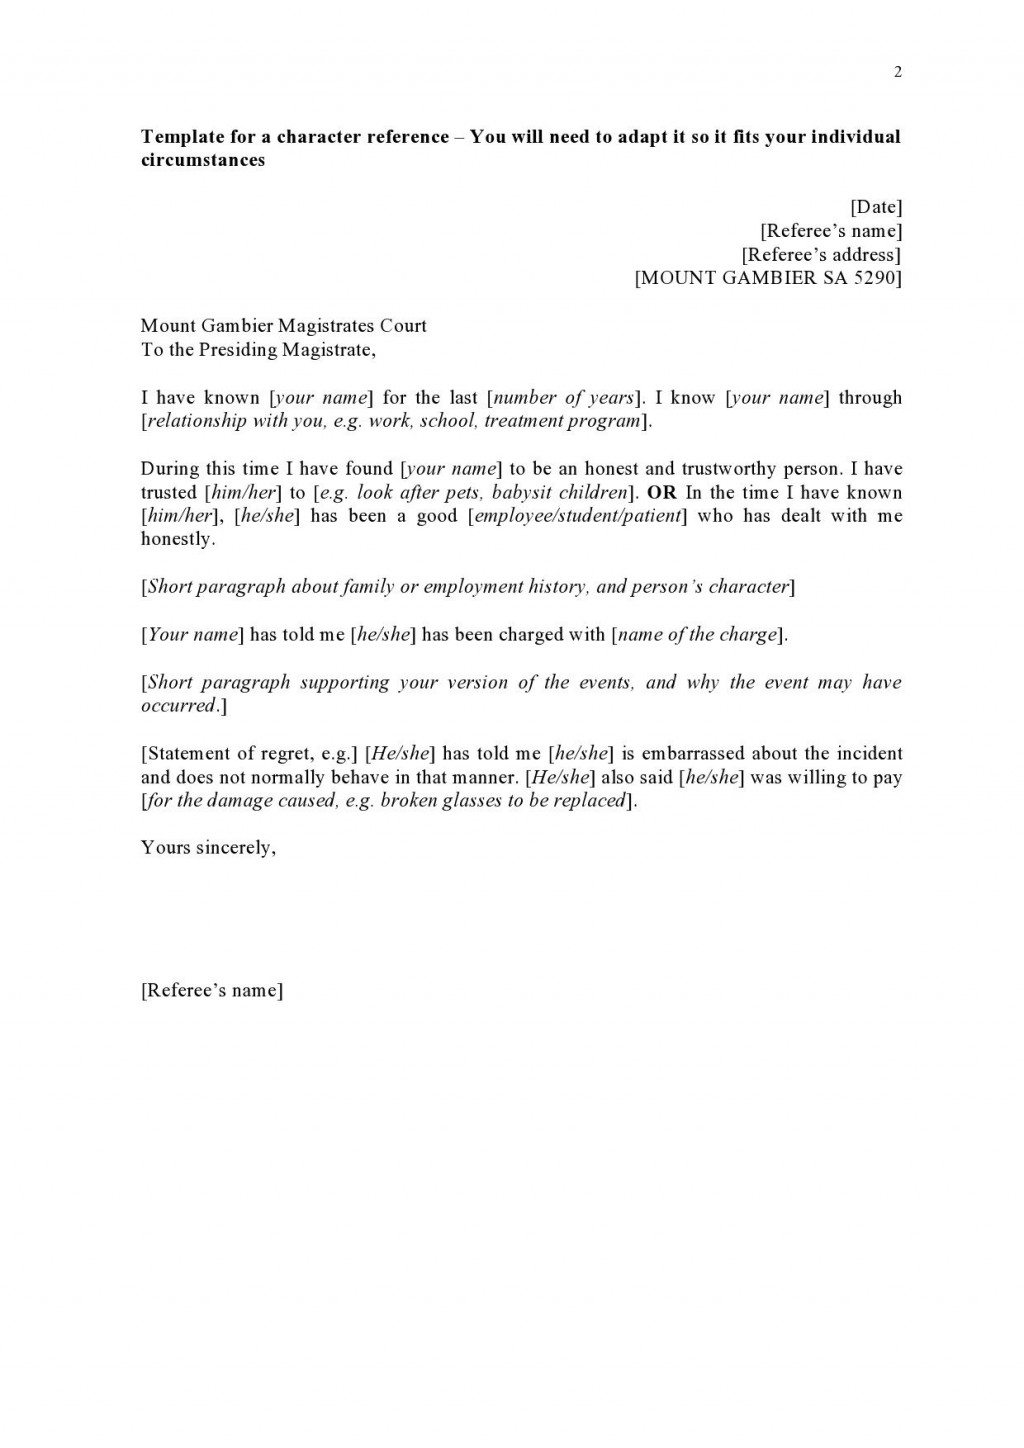 002 Fantastic Letter Of Reference Template Sample  For Employee Word Coworker TeacherLarge